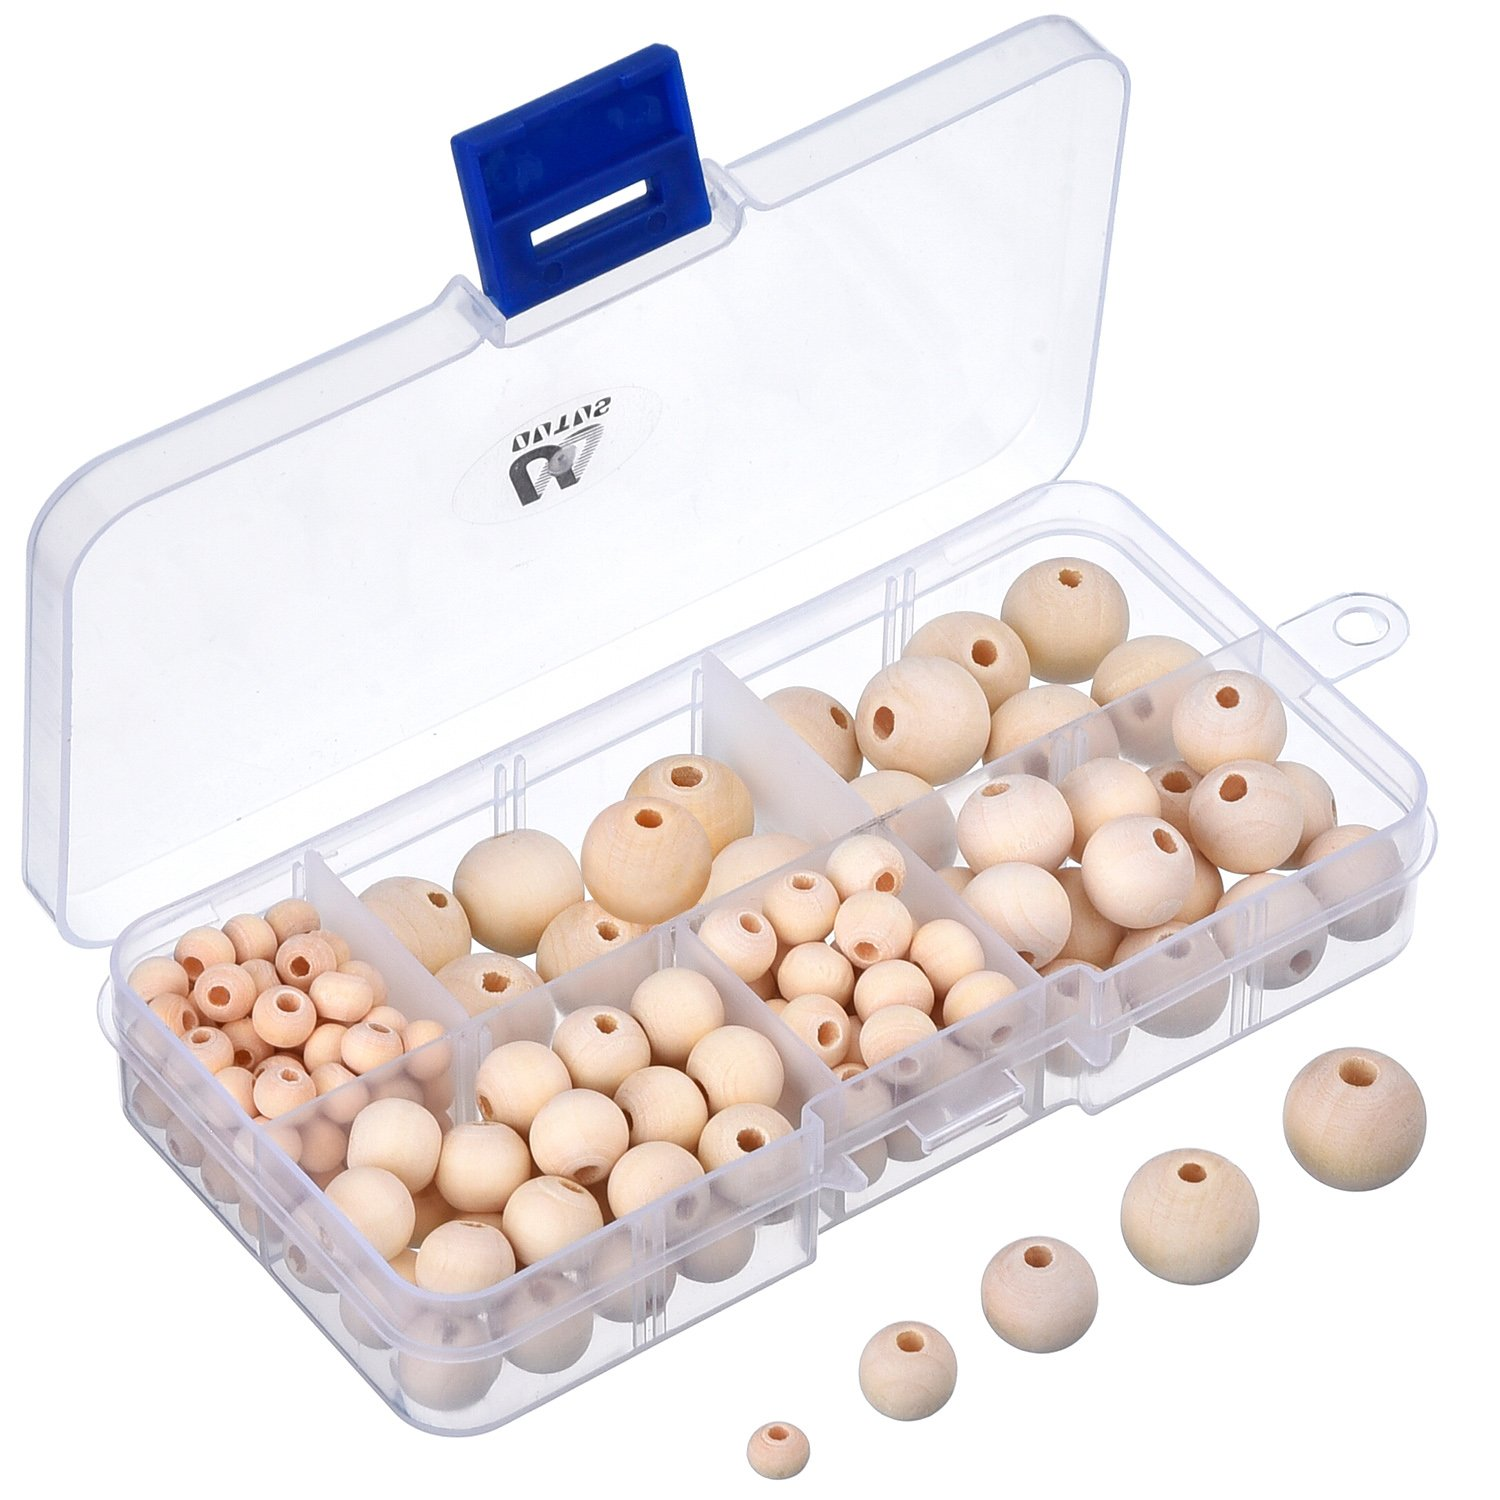 150 Pieces Natural Round Wood Beads Set with Box for DIY Jewelry Making, 5 Sizes (6 mm/ 8 mm/ 10 mm/ 12 mm/ 14 mm) Outus